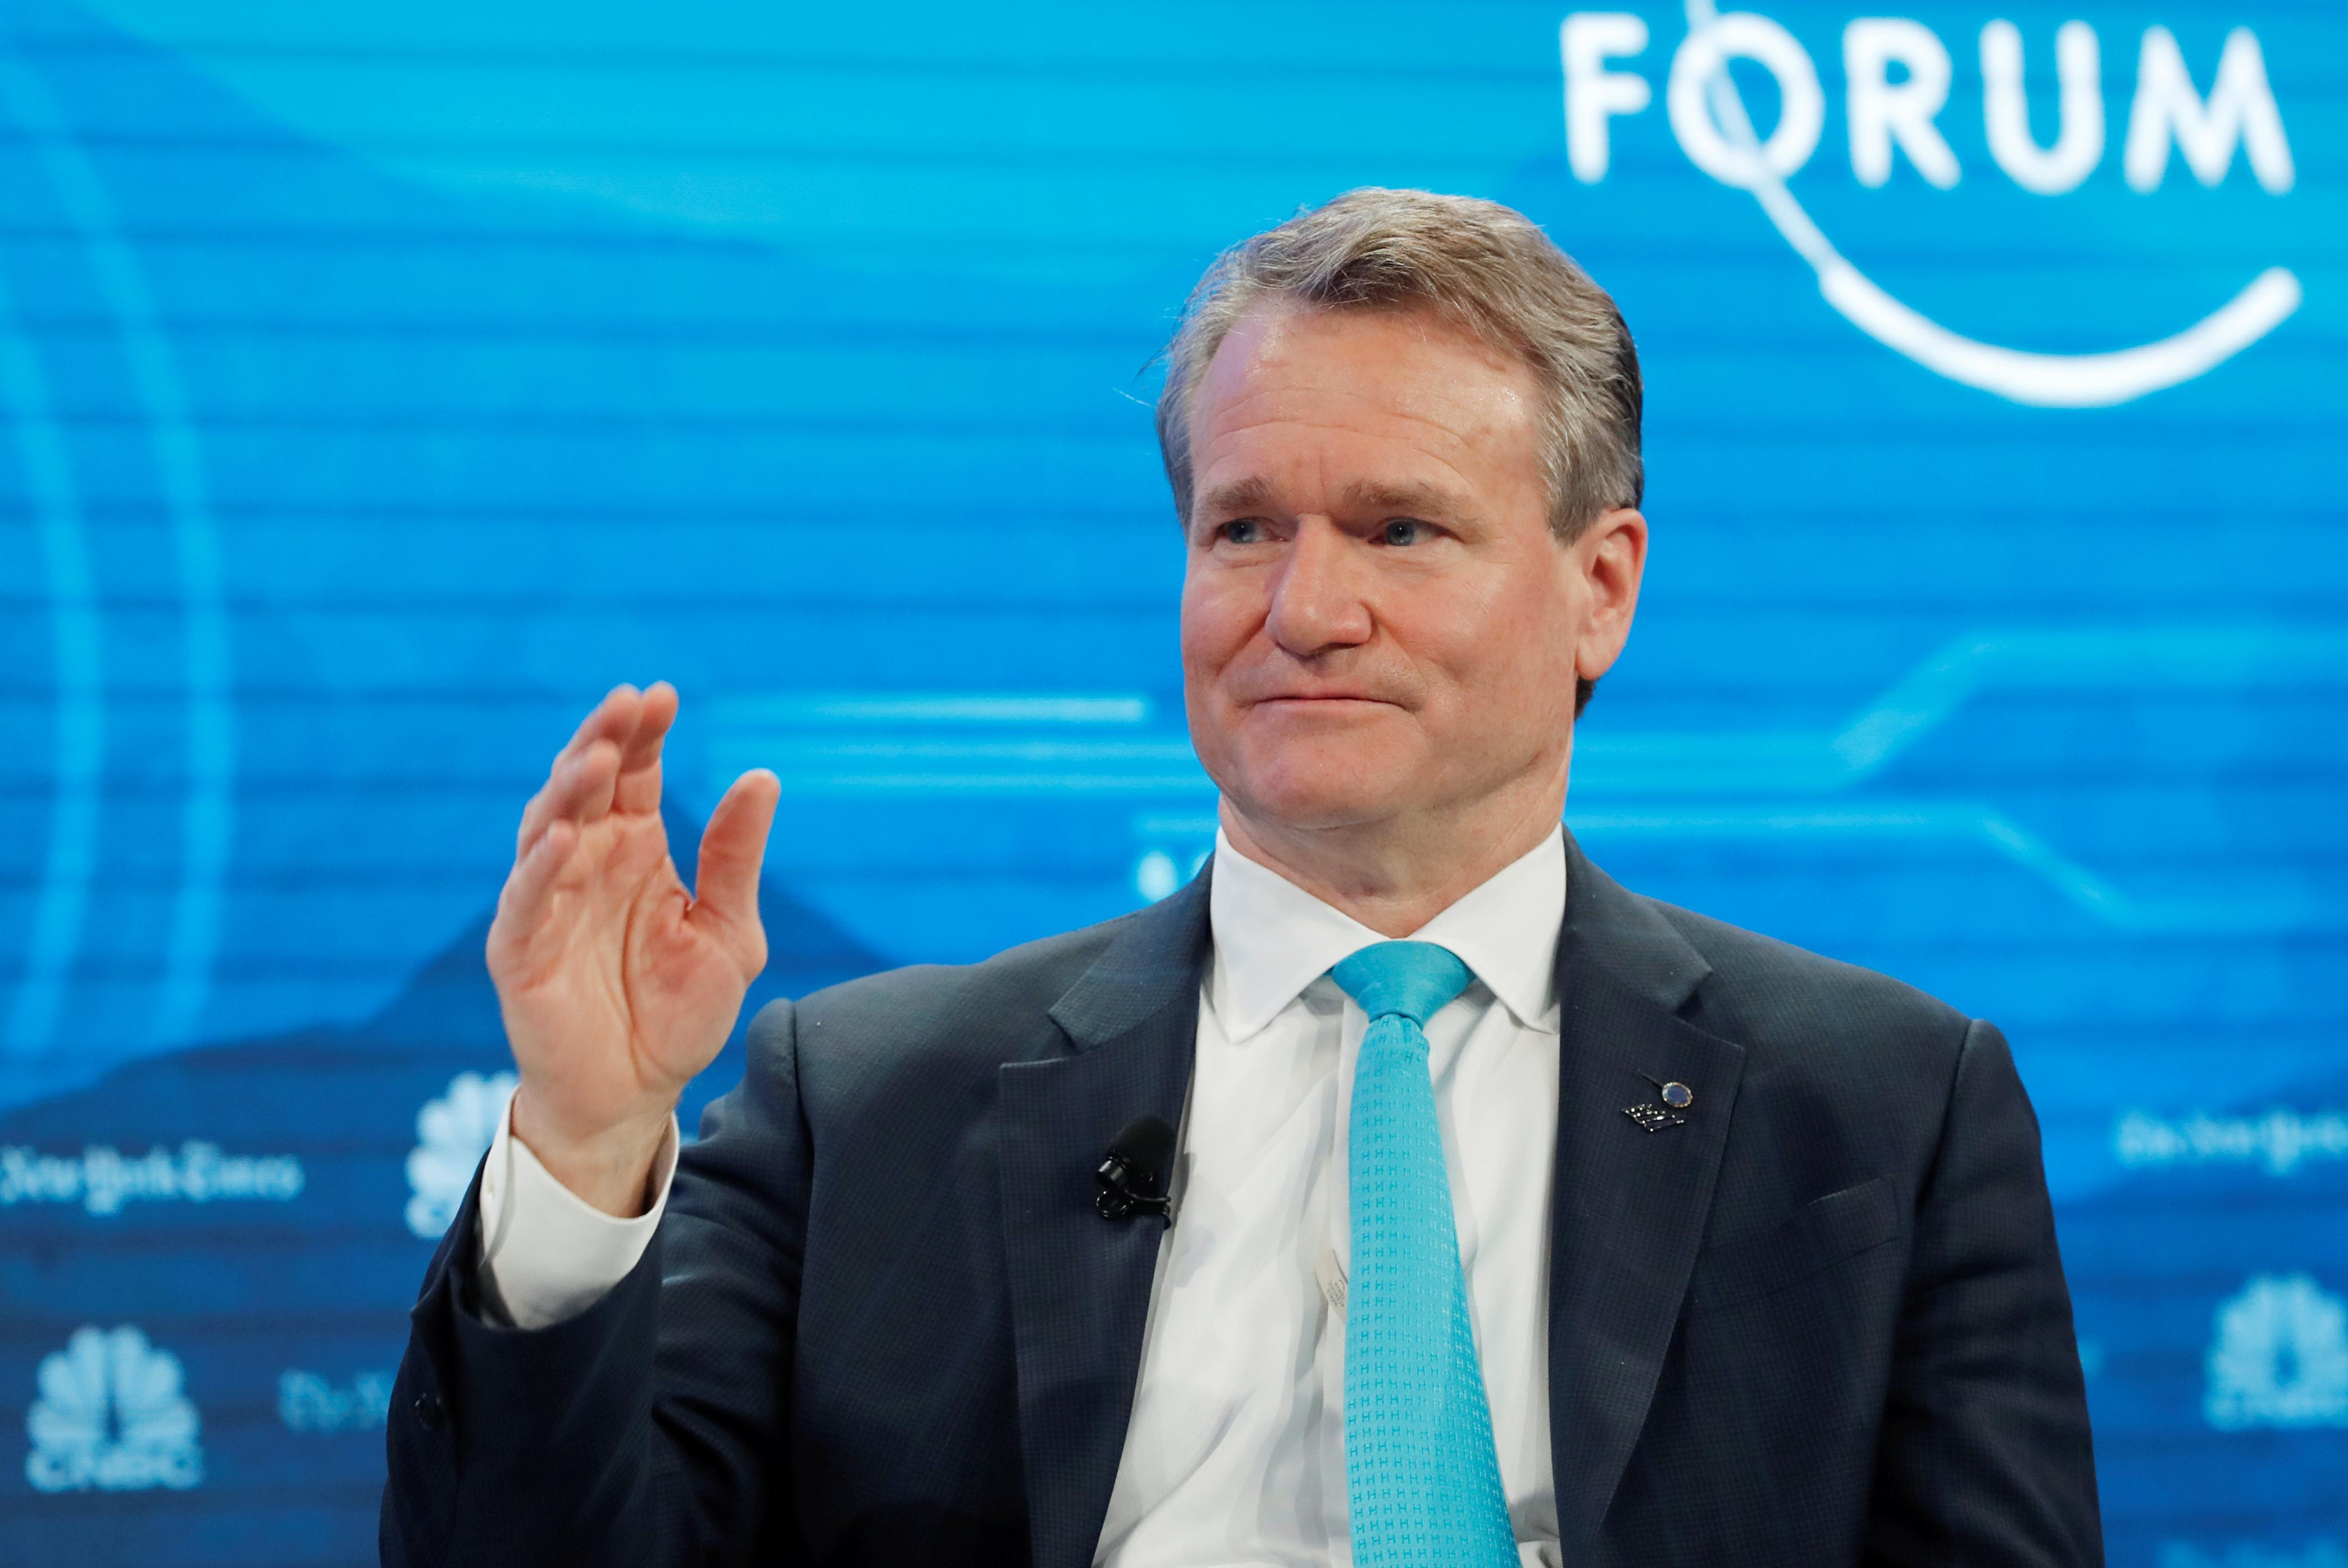 BofA CEO Moynihan plays down fears of U.S. recession: CNBC